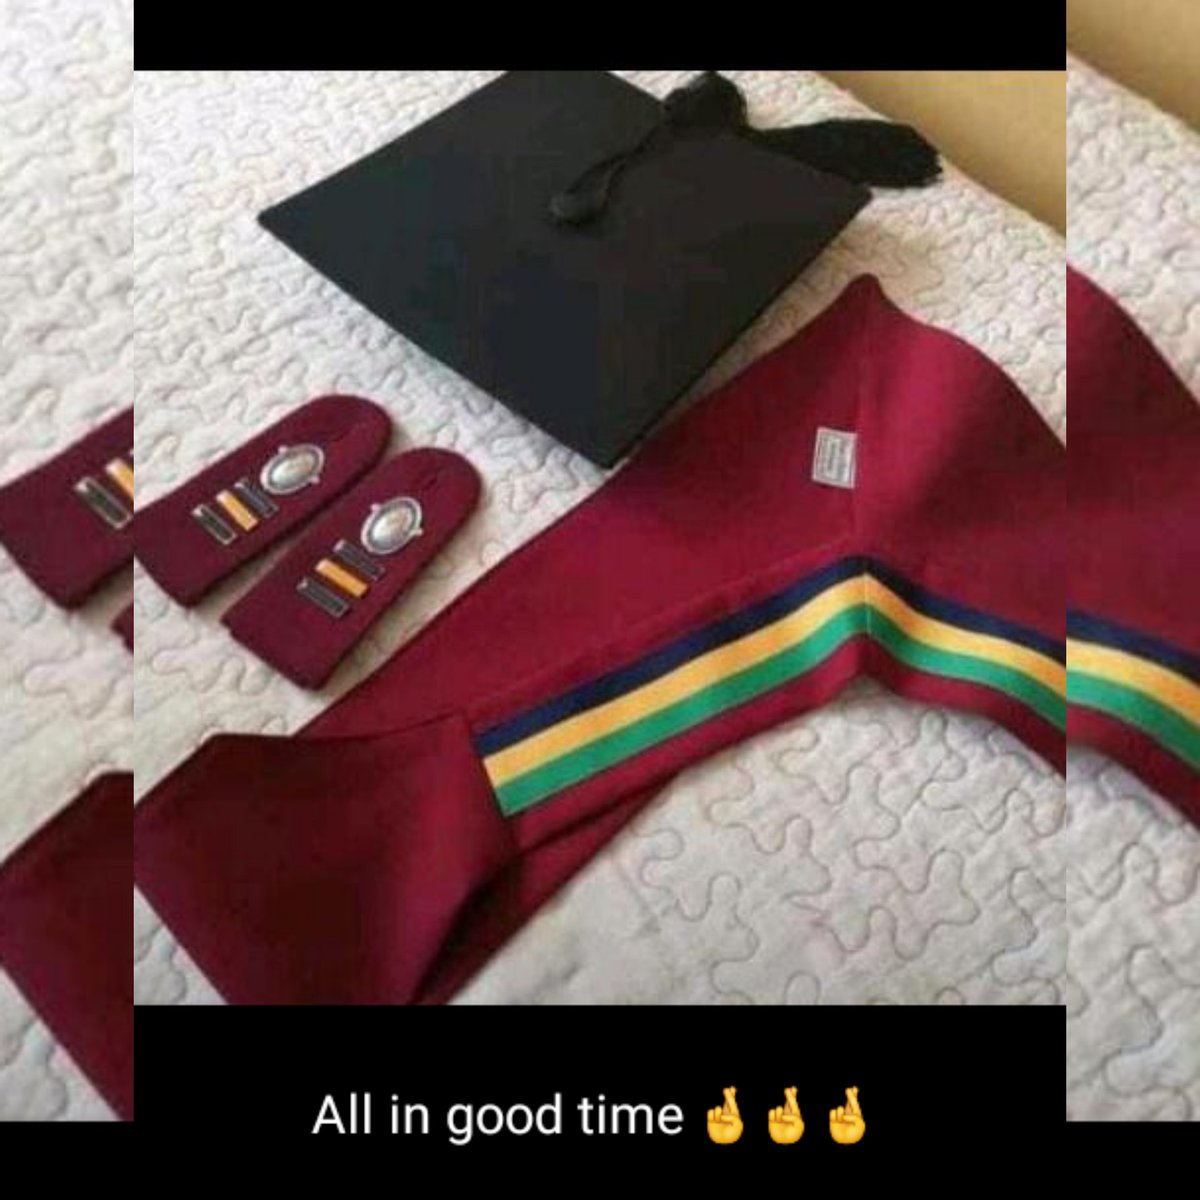 There was a time in life where I had one outfit be ngithembile , one pair of shoes couldn't afford stuff like other kids , uGogo made end meet and was a house full of cousin's but in 2016 I lost my grandmother before trail exams some how by God's Grace I pushed on. pic.twitter.com/NujWQetkpY